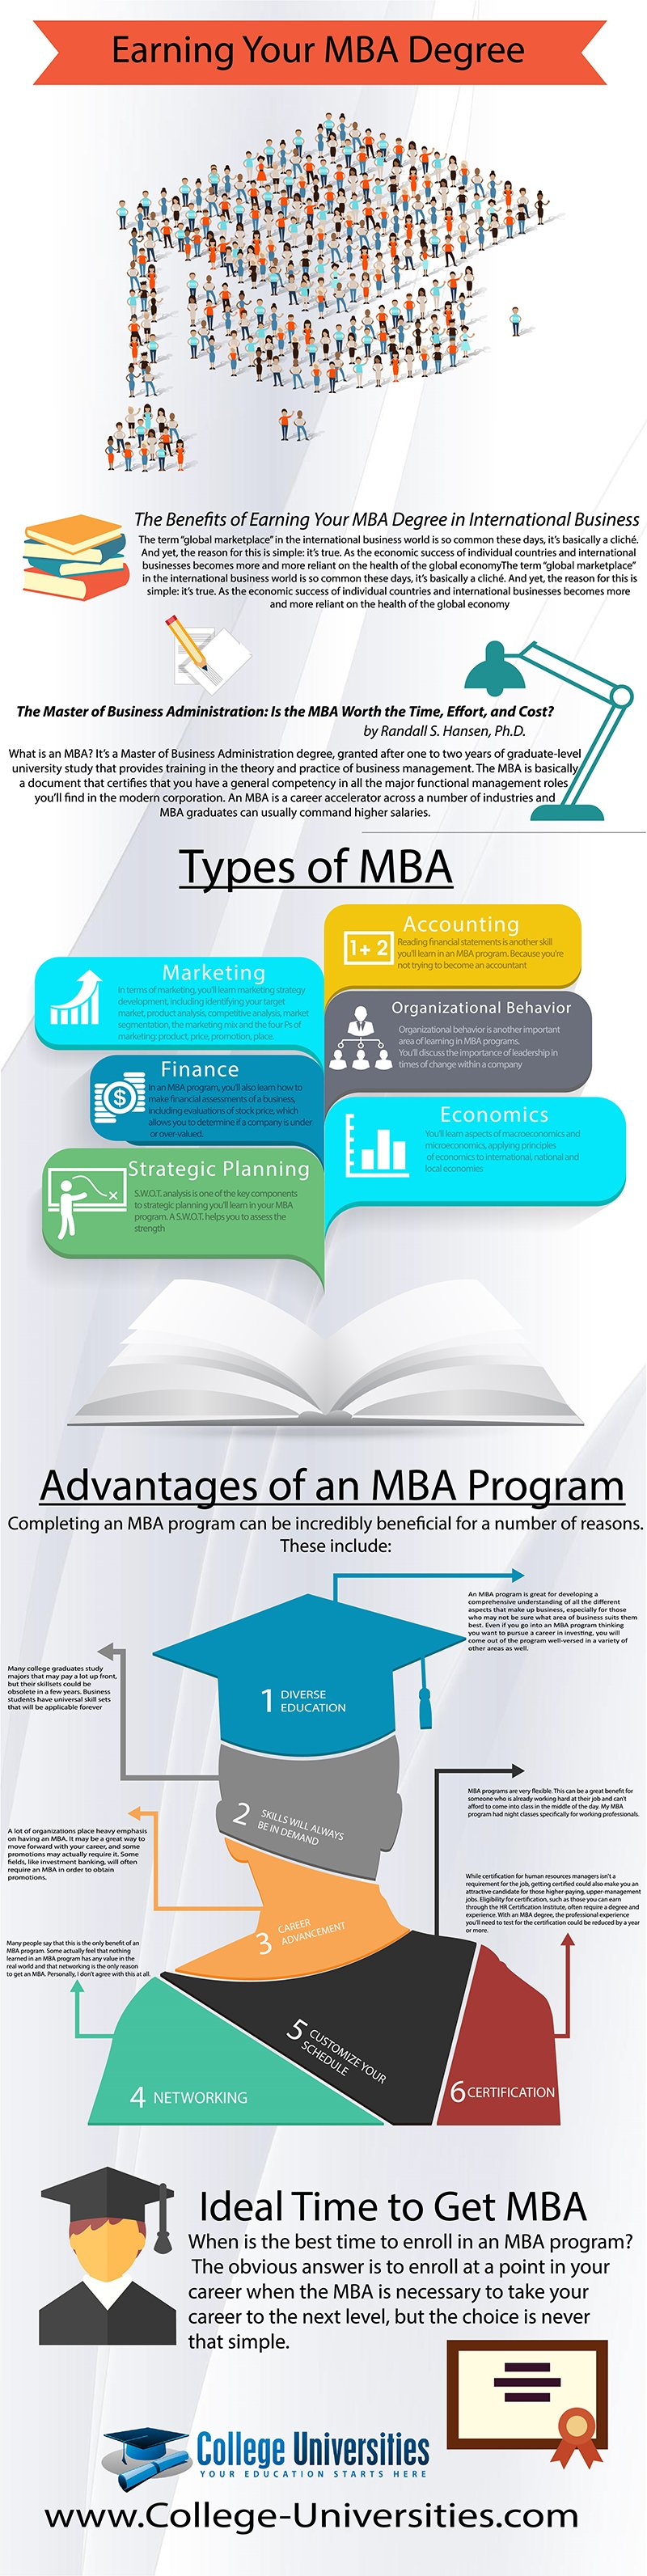 Earning your MBA Degree